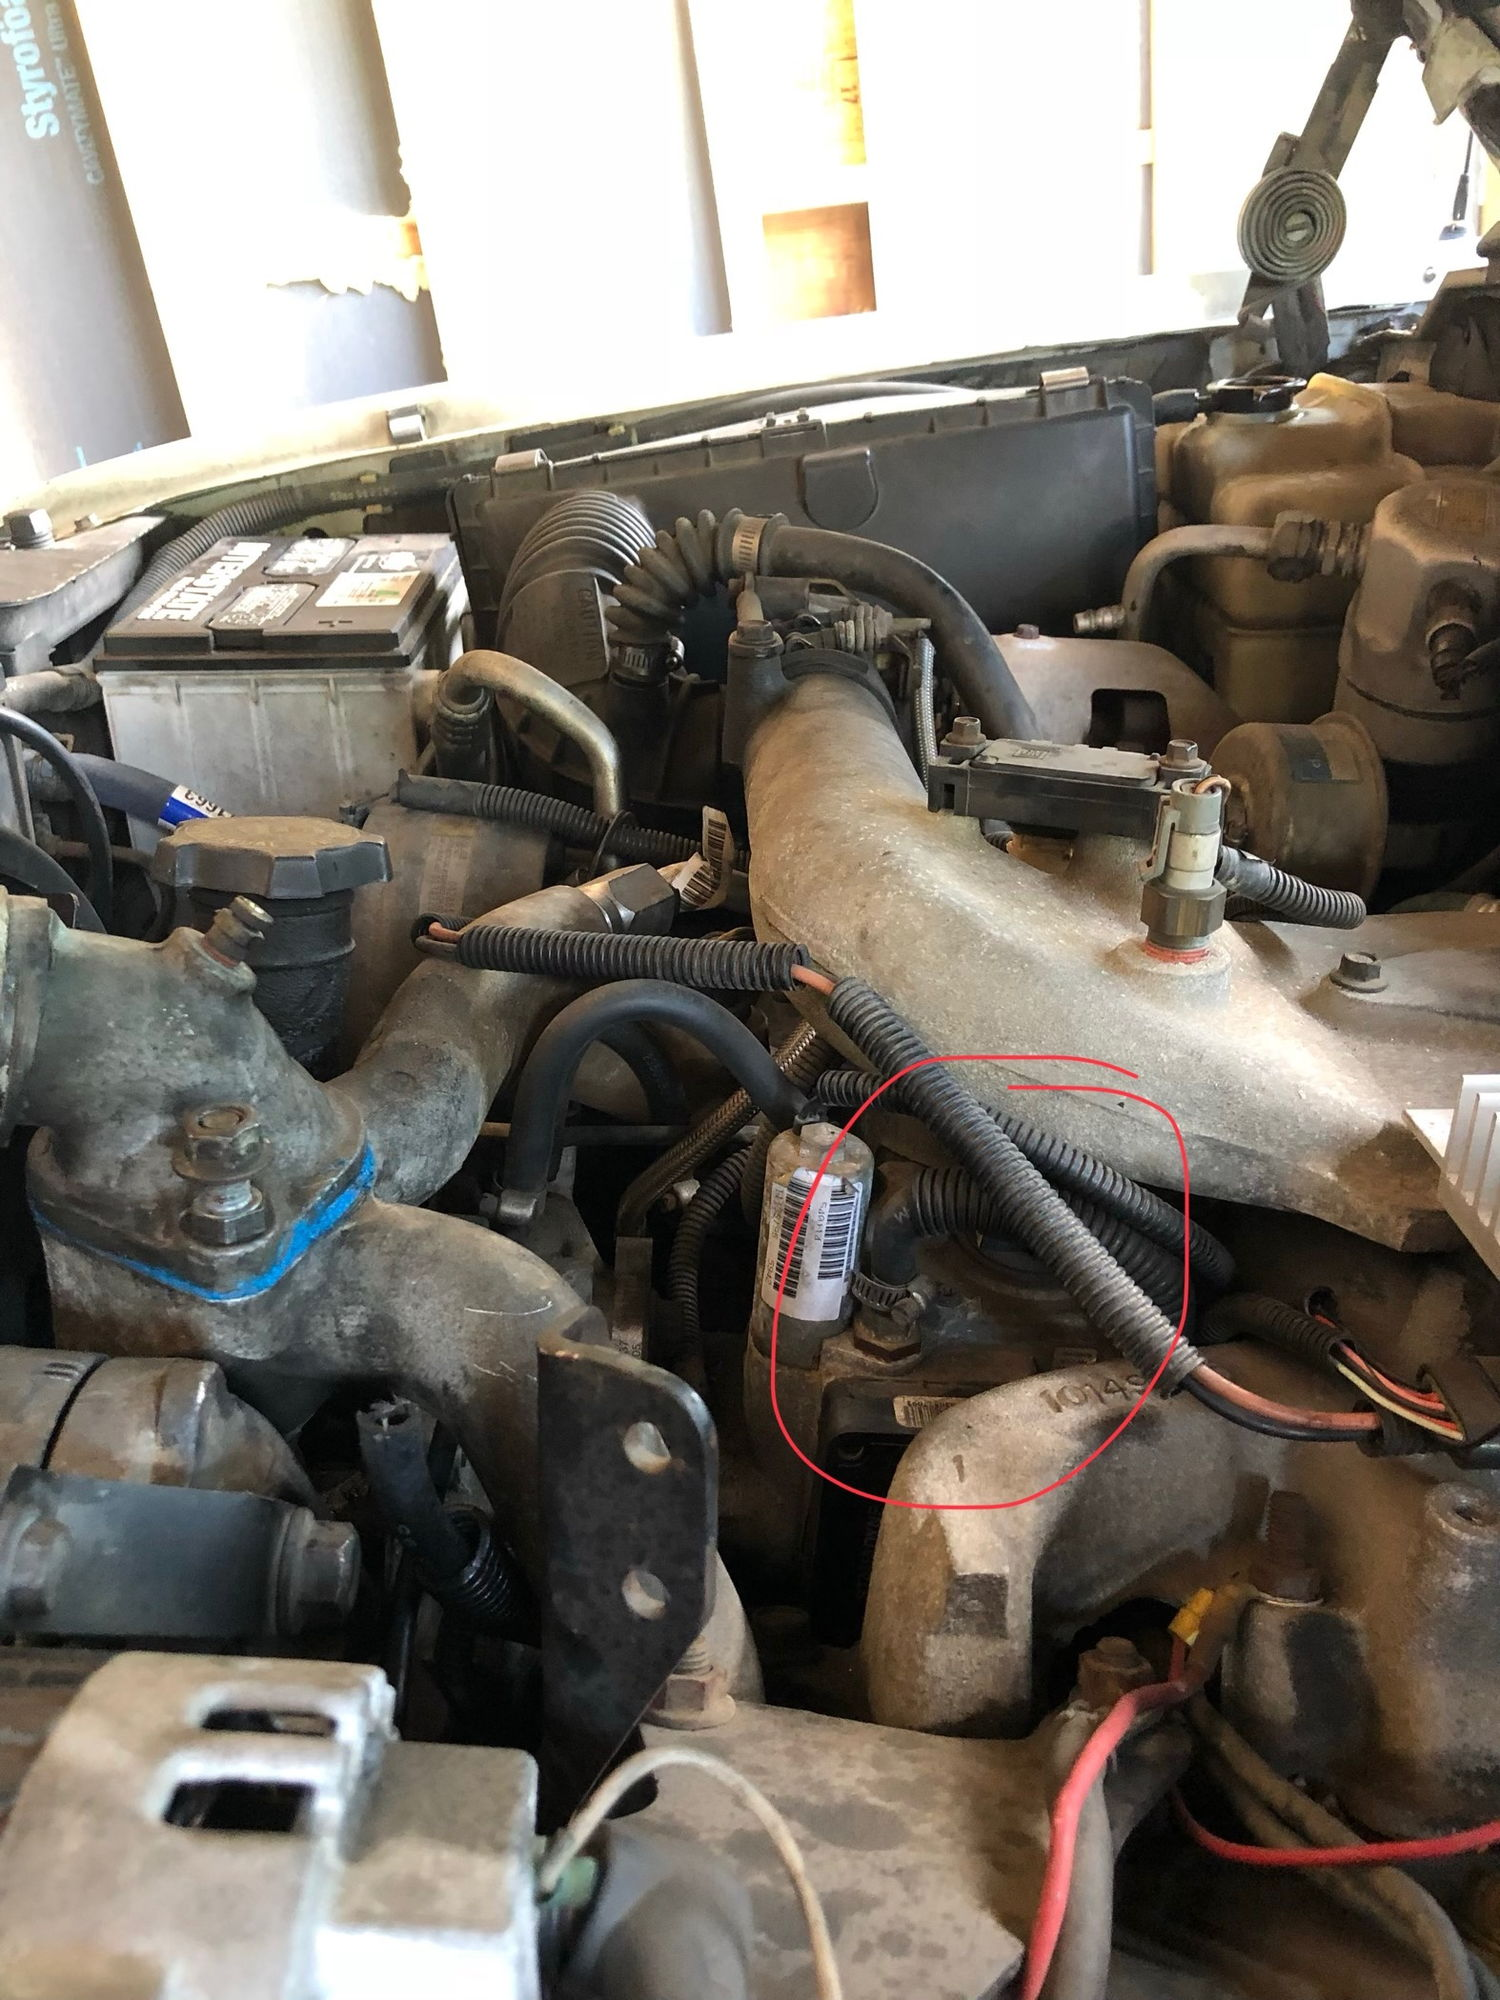 How To Bleed 65l Fuel System Diesel Bombers 94 Chevy Truck Filter The Is Running I Need Replace Hose With Line Cause Its Dry Rotted Second Picture Circled What Think Same But Not